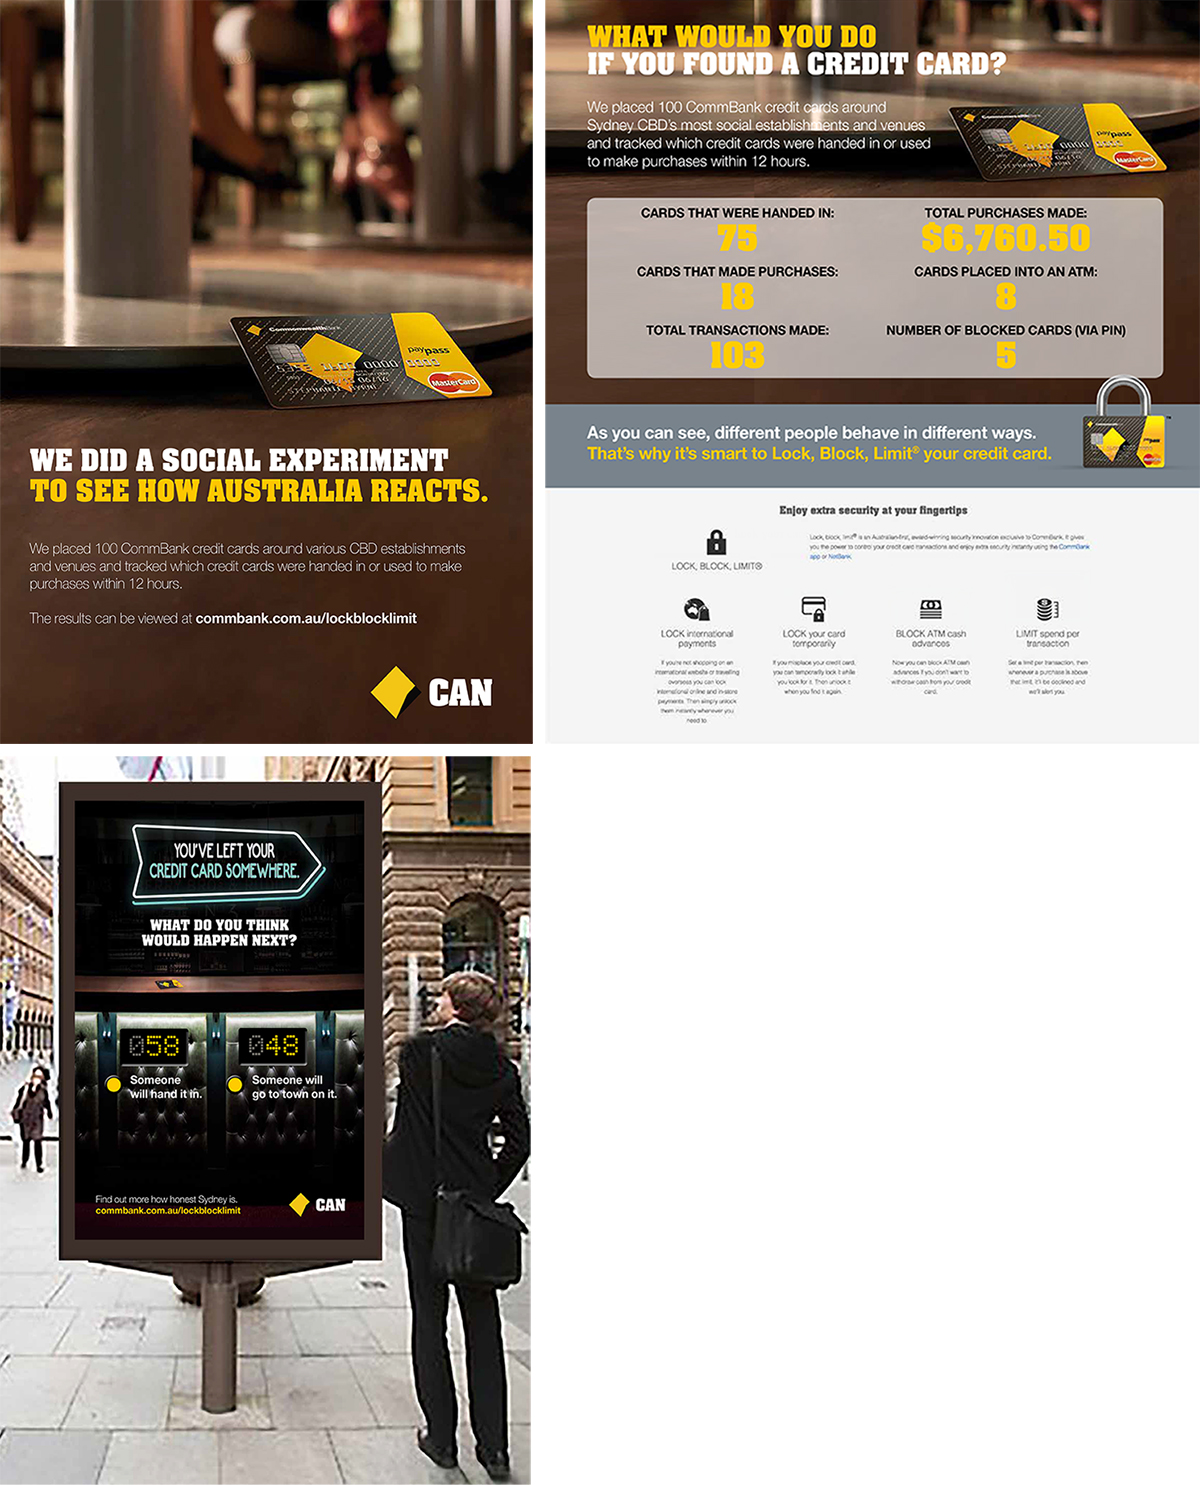 CommBank: Create a social experiment centred around the honesty of everyday people.